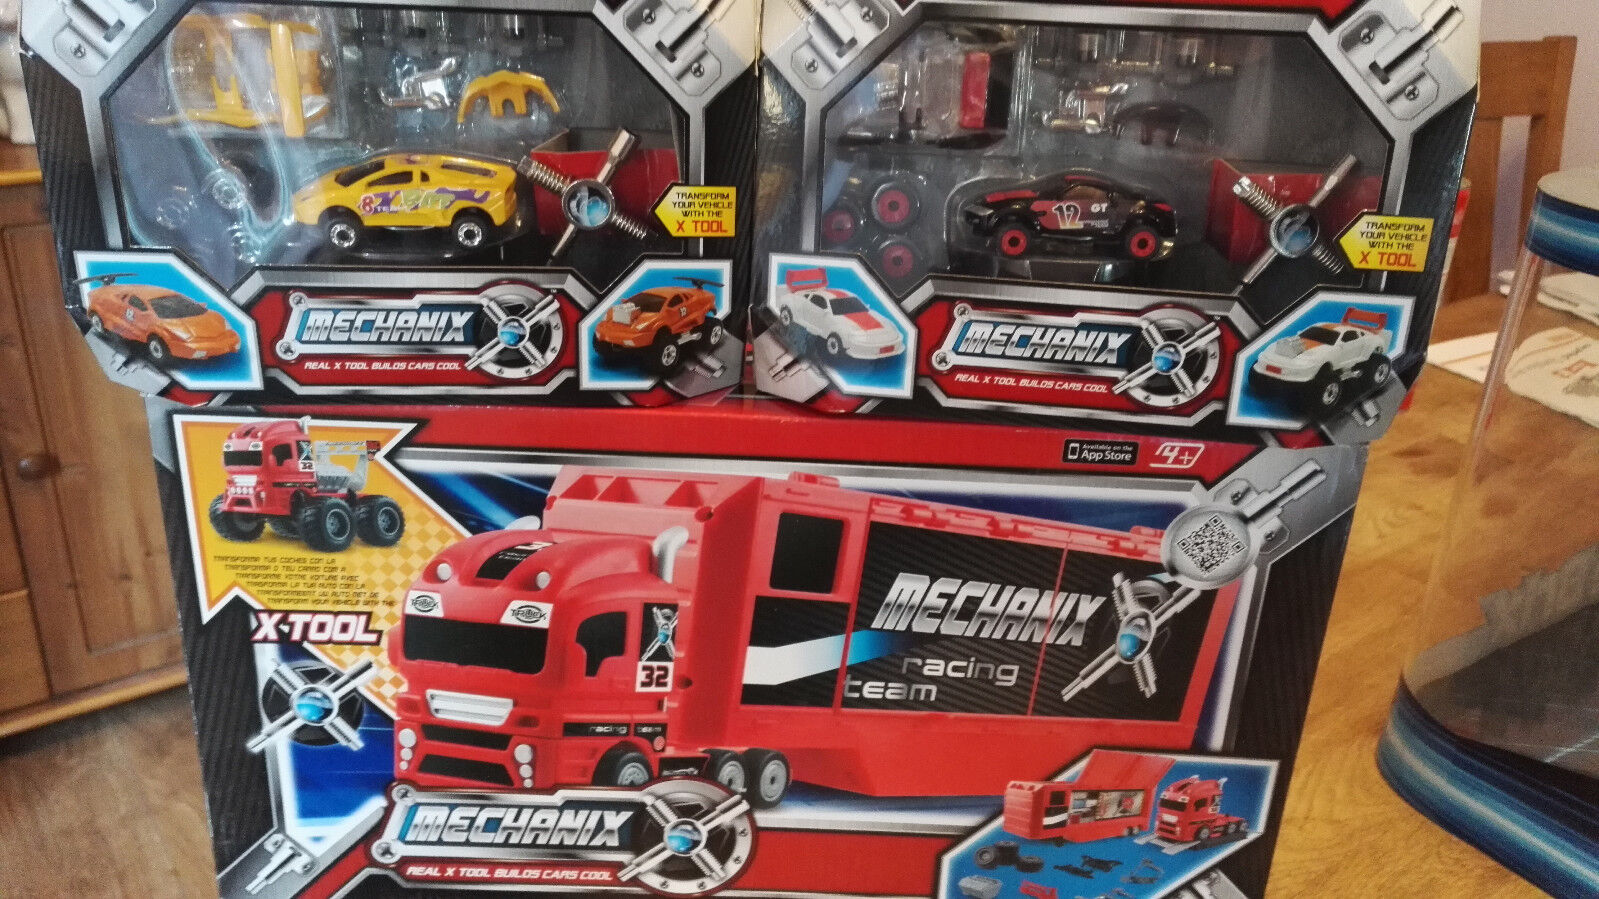 MECHANIX RACING TEAM SET + GRAN TOUR SET + TST RACER SET - Recieve ALL 3 - set 1